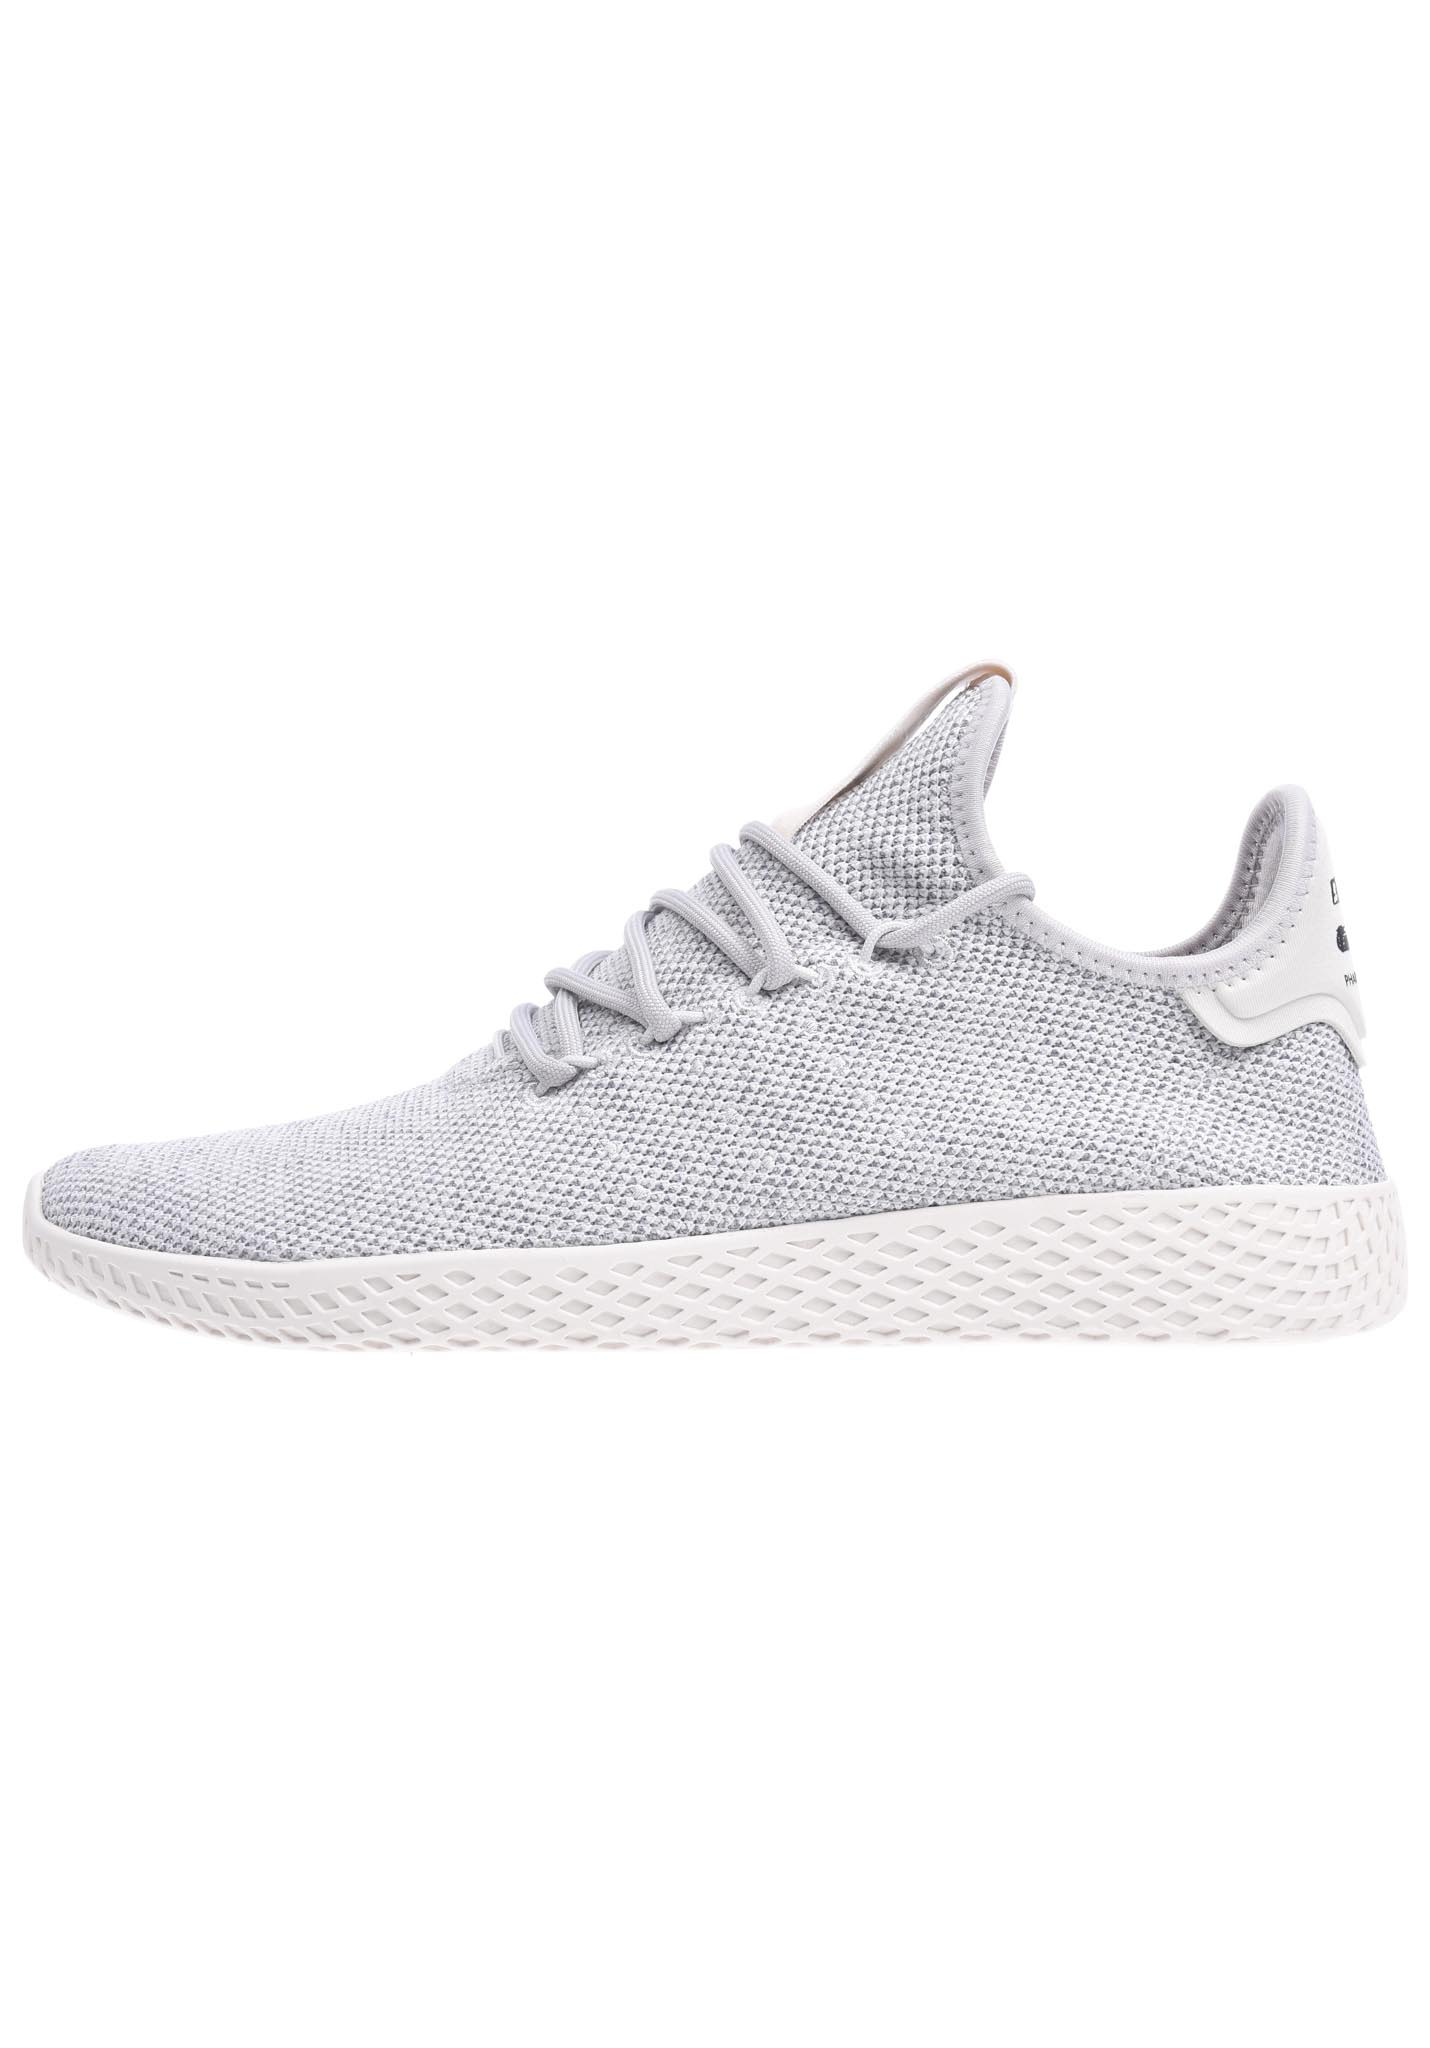 Sneaker Grau Adidas Williams Für Originals Hu Tennis Pharrell Herren tBrxhCsQdo